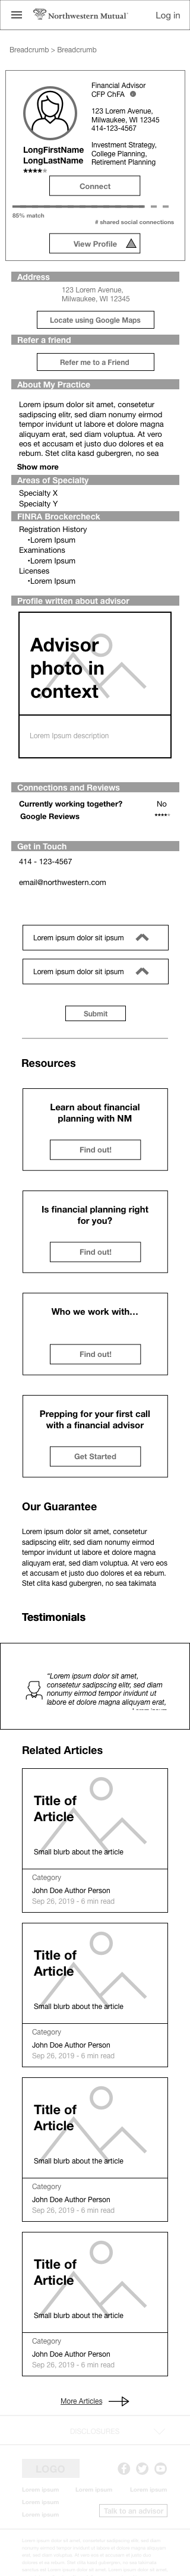 Scrollable Find a Financial Advisor Tool Wireframe